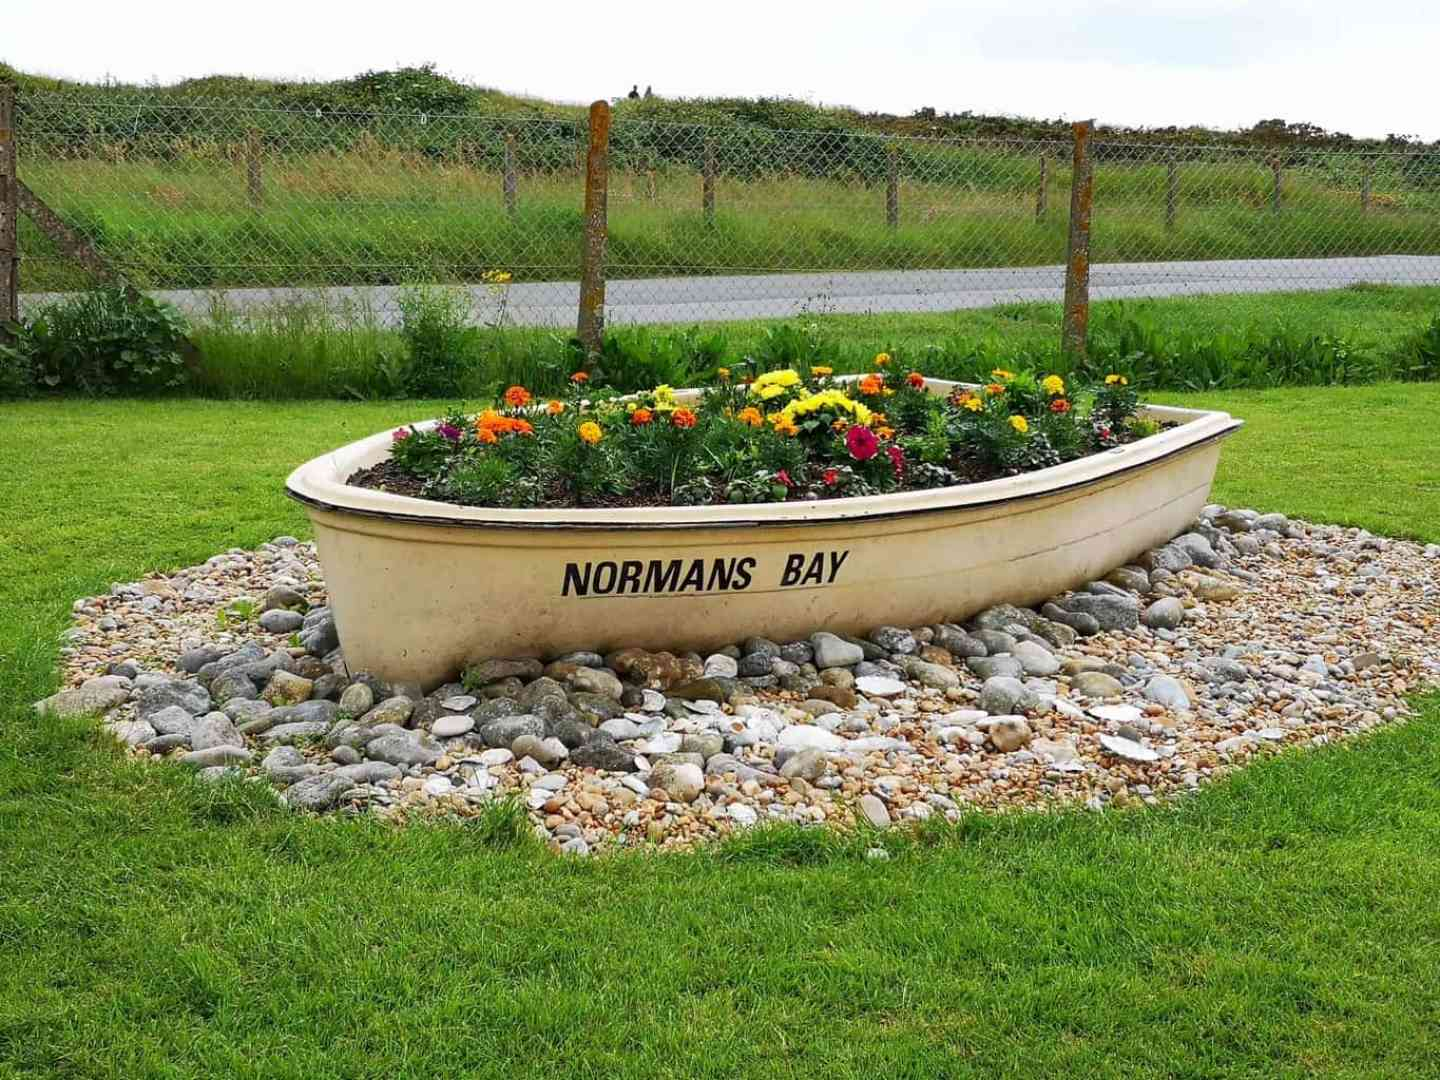 Norman's Bay Camping and Caravanning Club Site